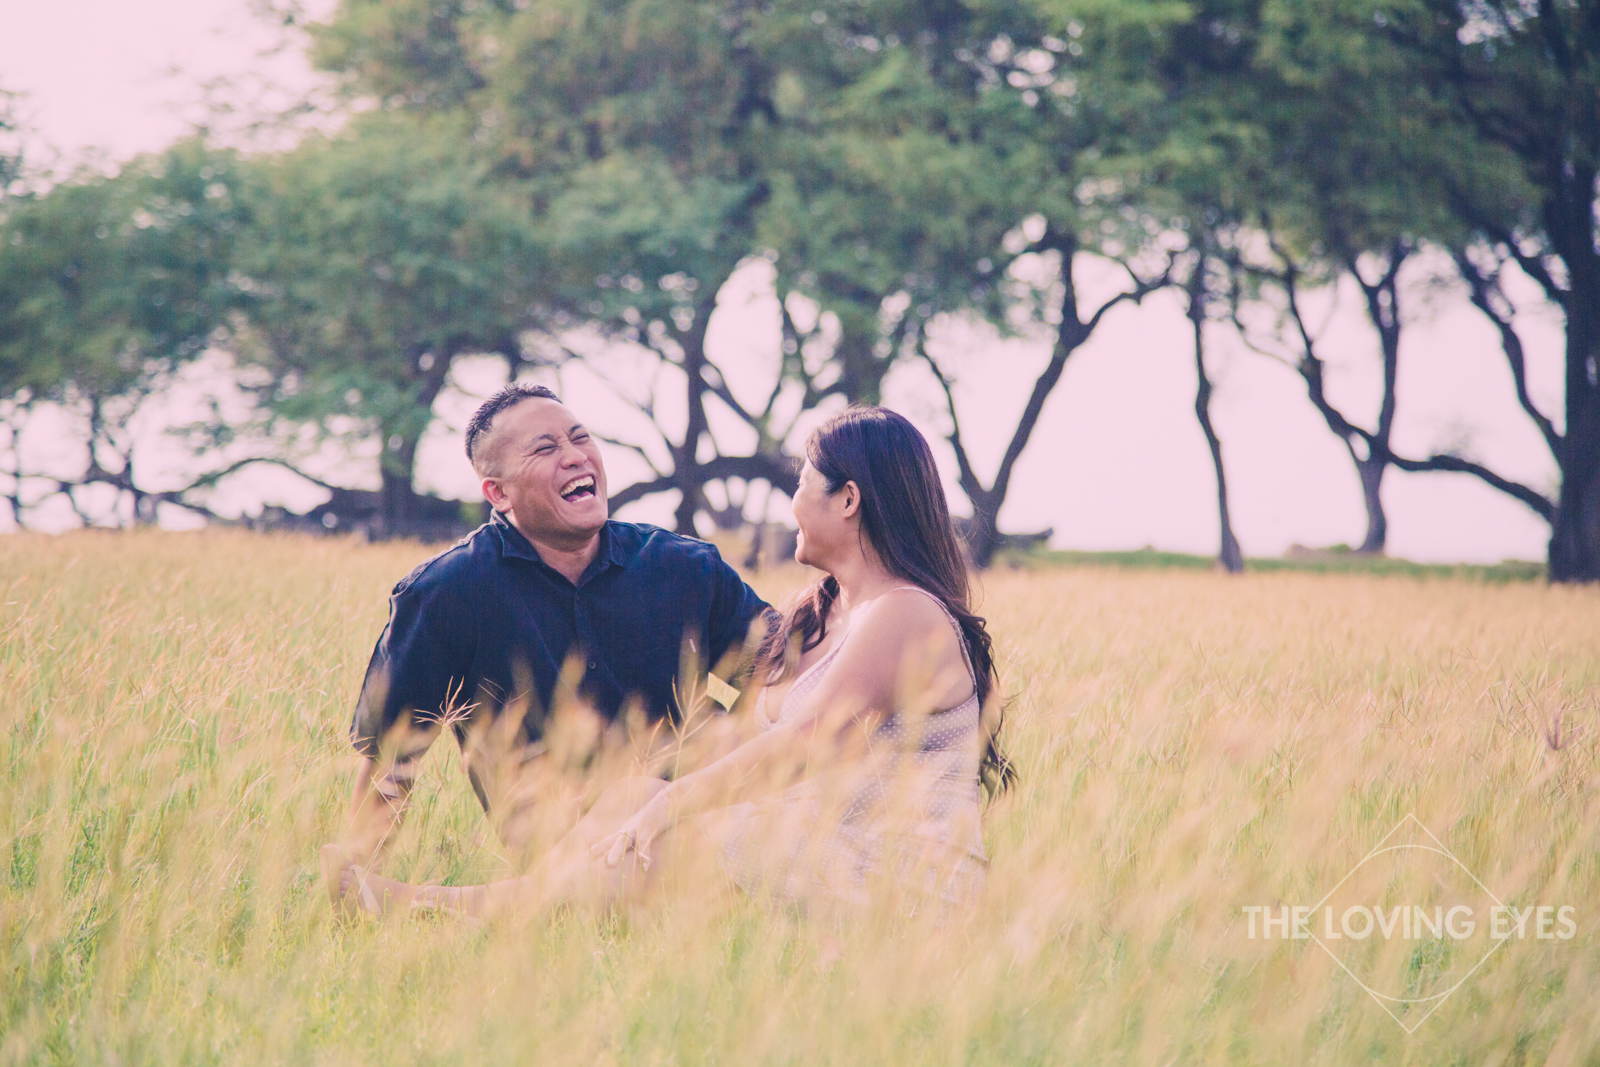 Jeana_and_Clyde_Engagement-2.jpg